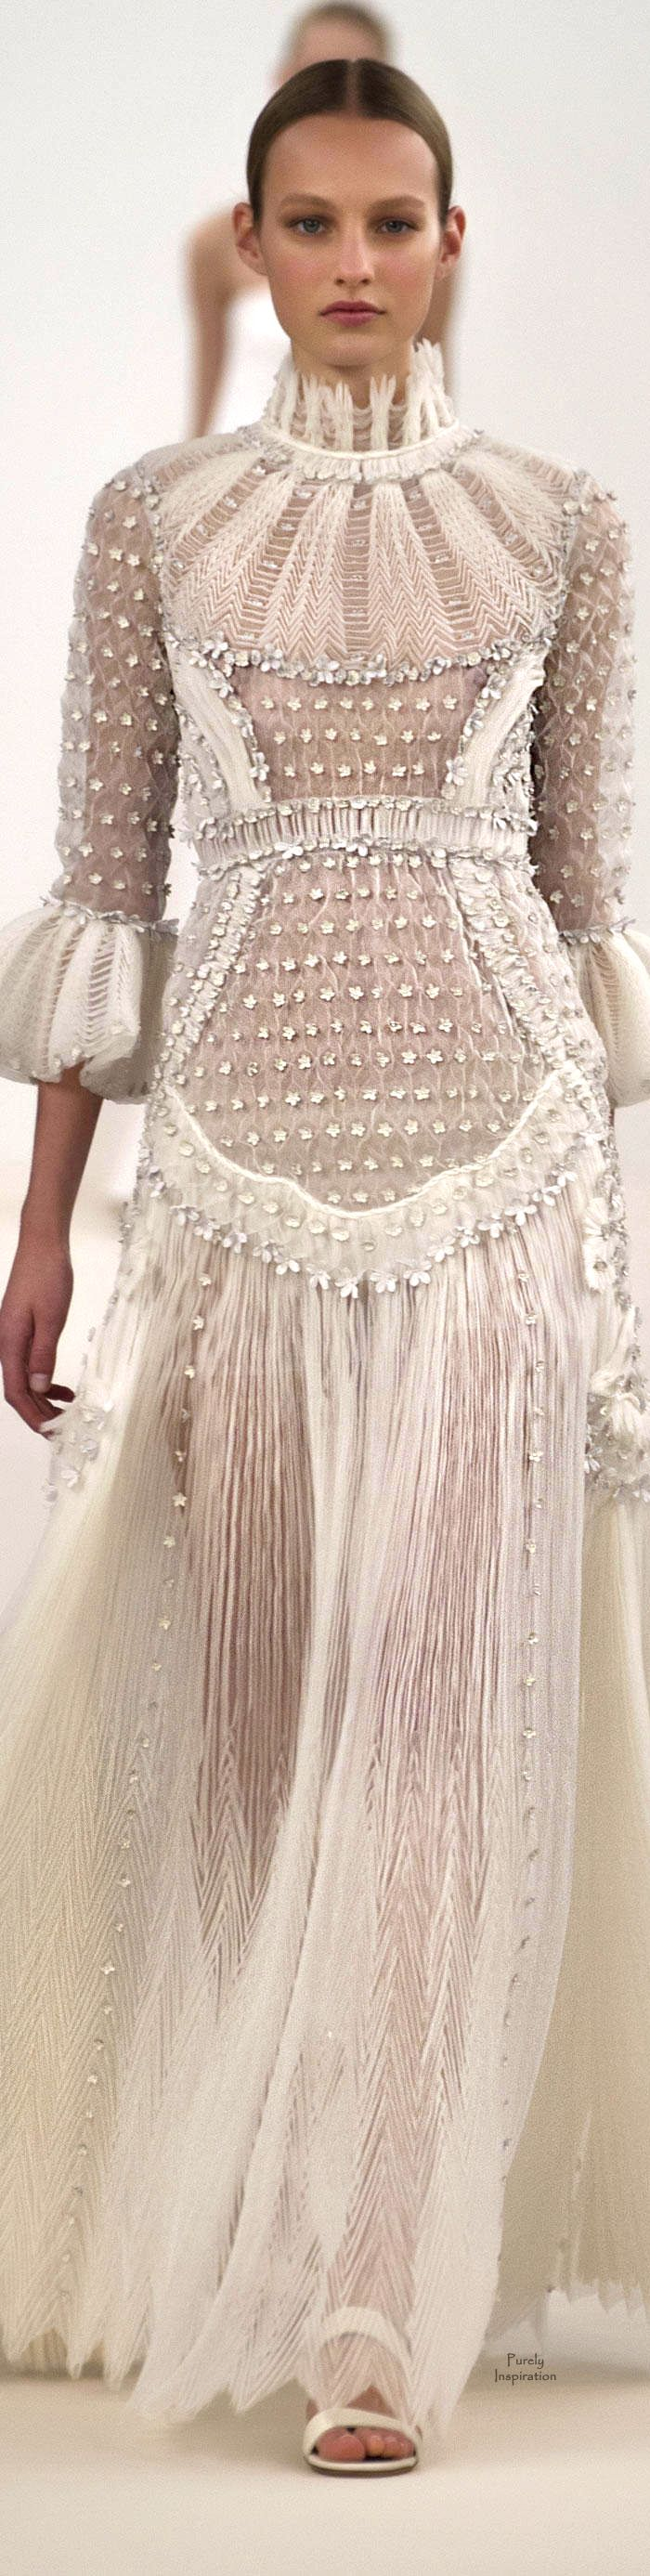 Valentino New York Haute Couture Fashion Show 2014. Help it looks like Queen Elizabeth the First wore this.... in not a good way